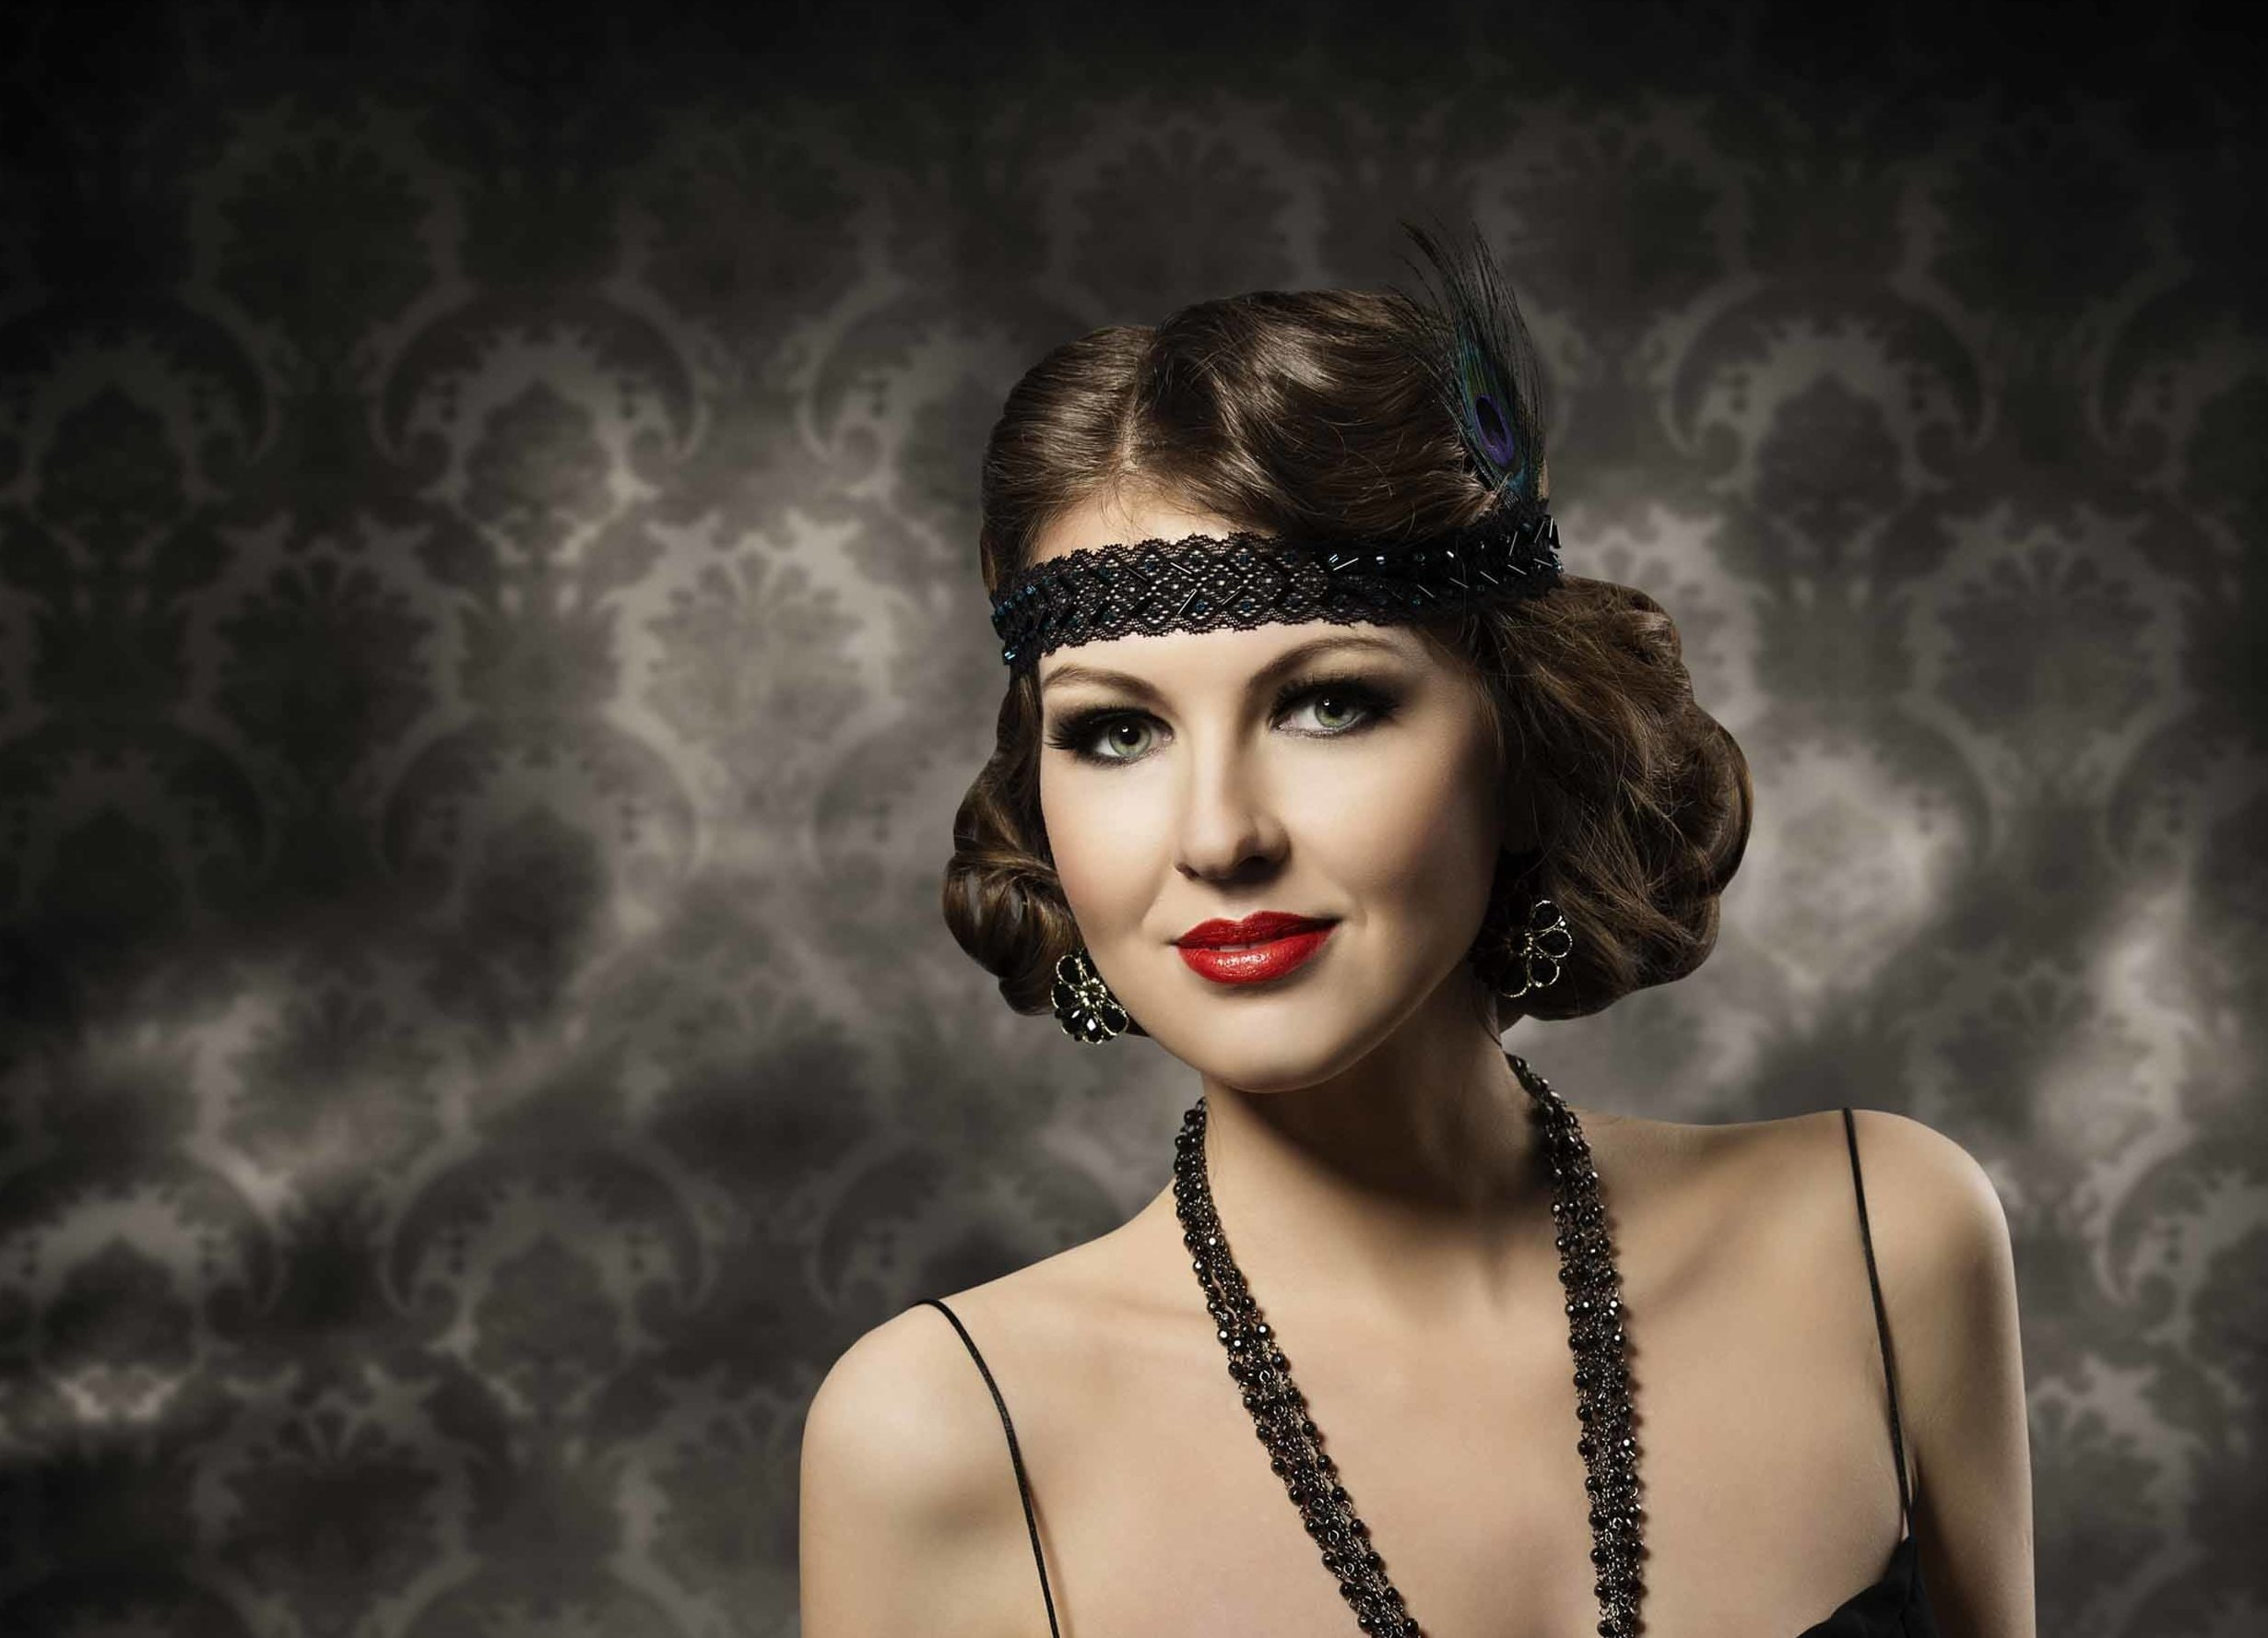 Brunette model with a 1920s short bob and finger waves with lace headpiece